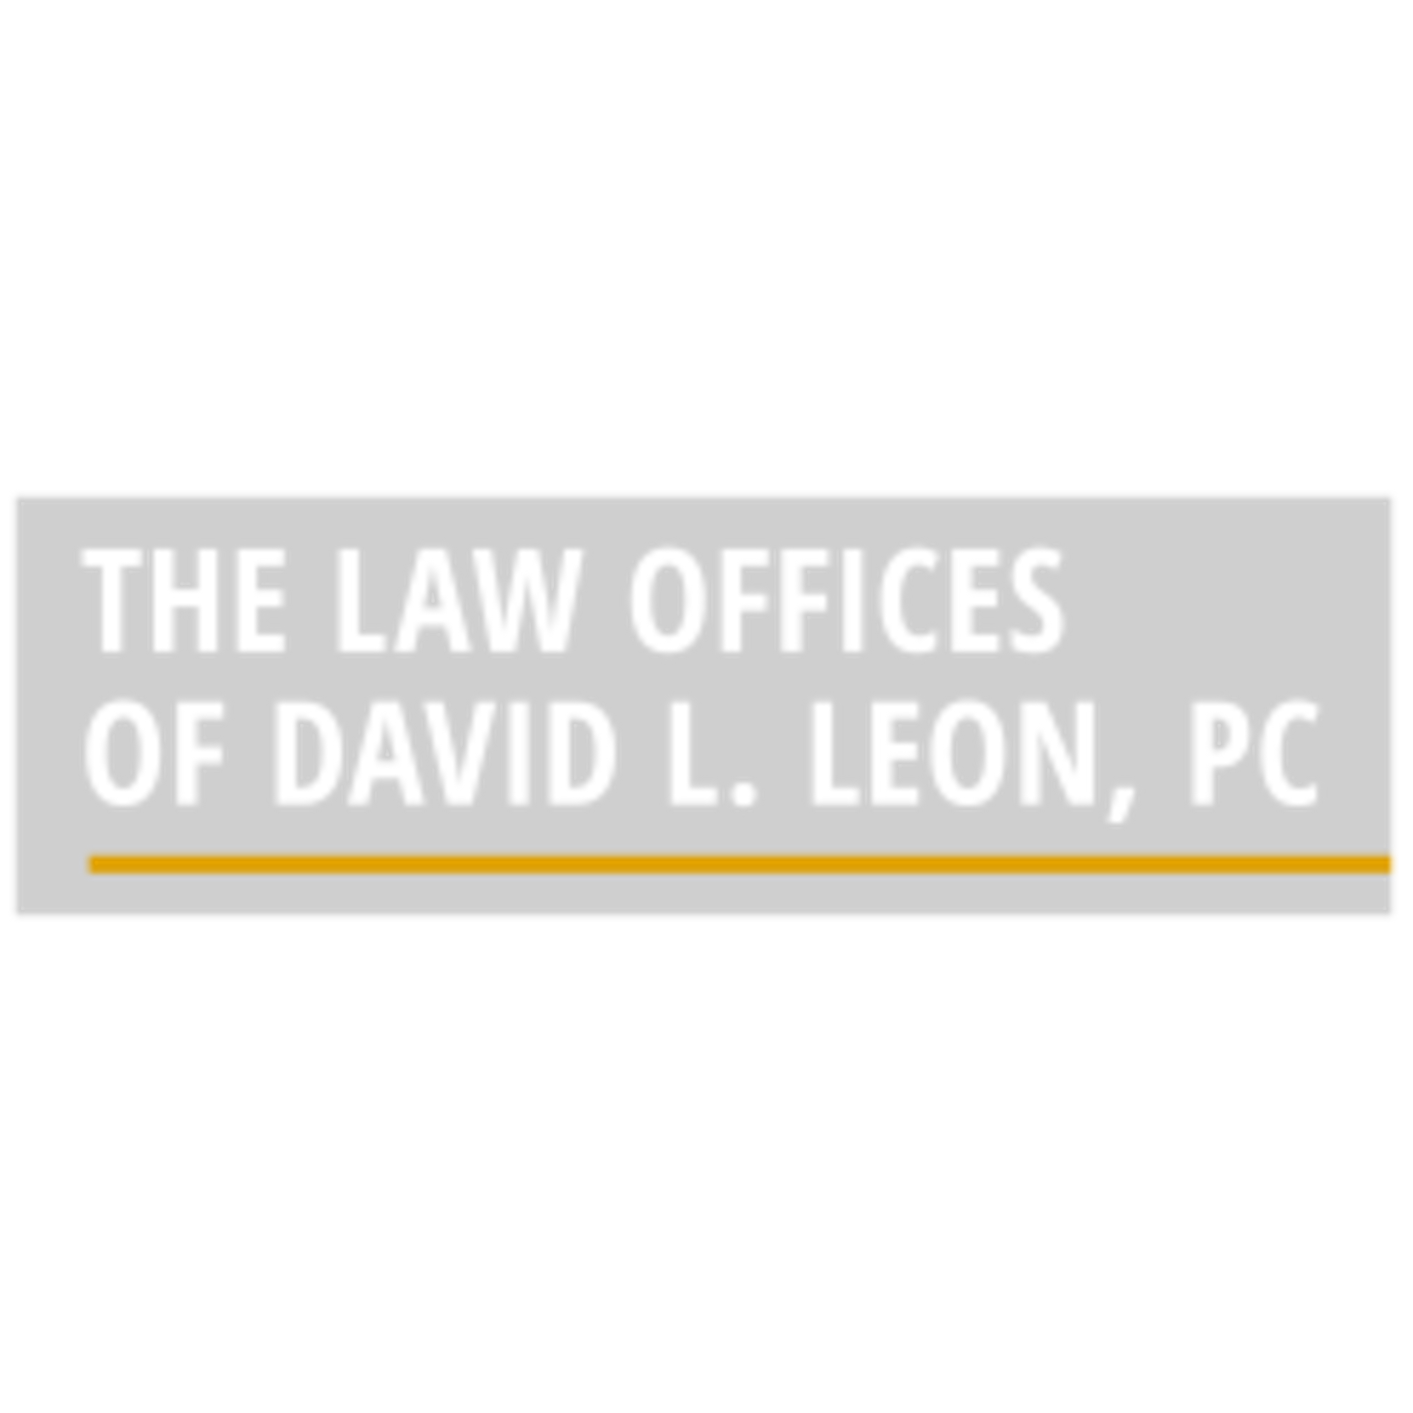 The Law Offices of David L. Leon PC